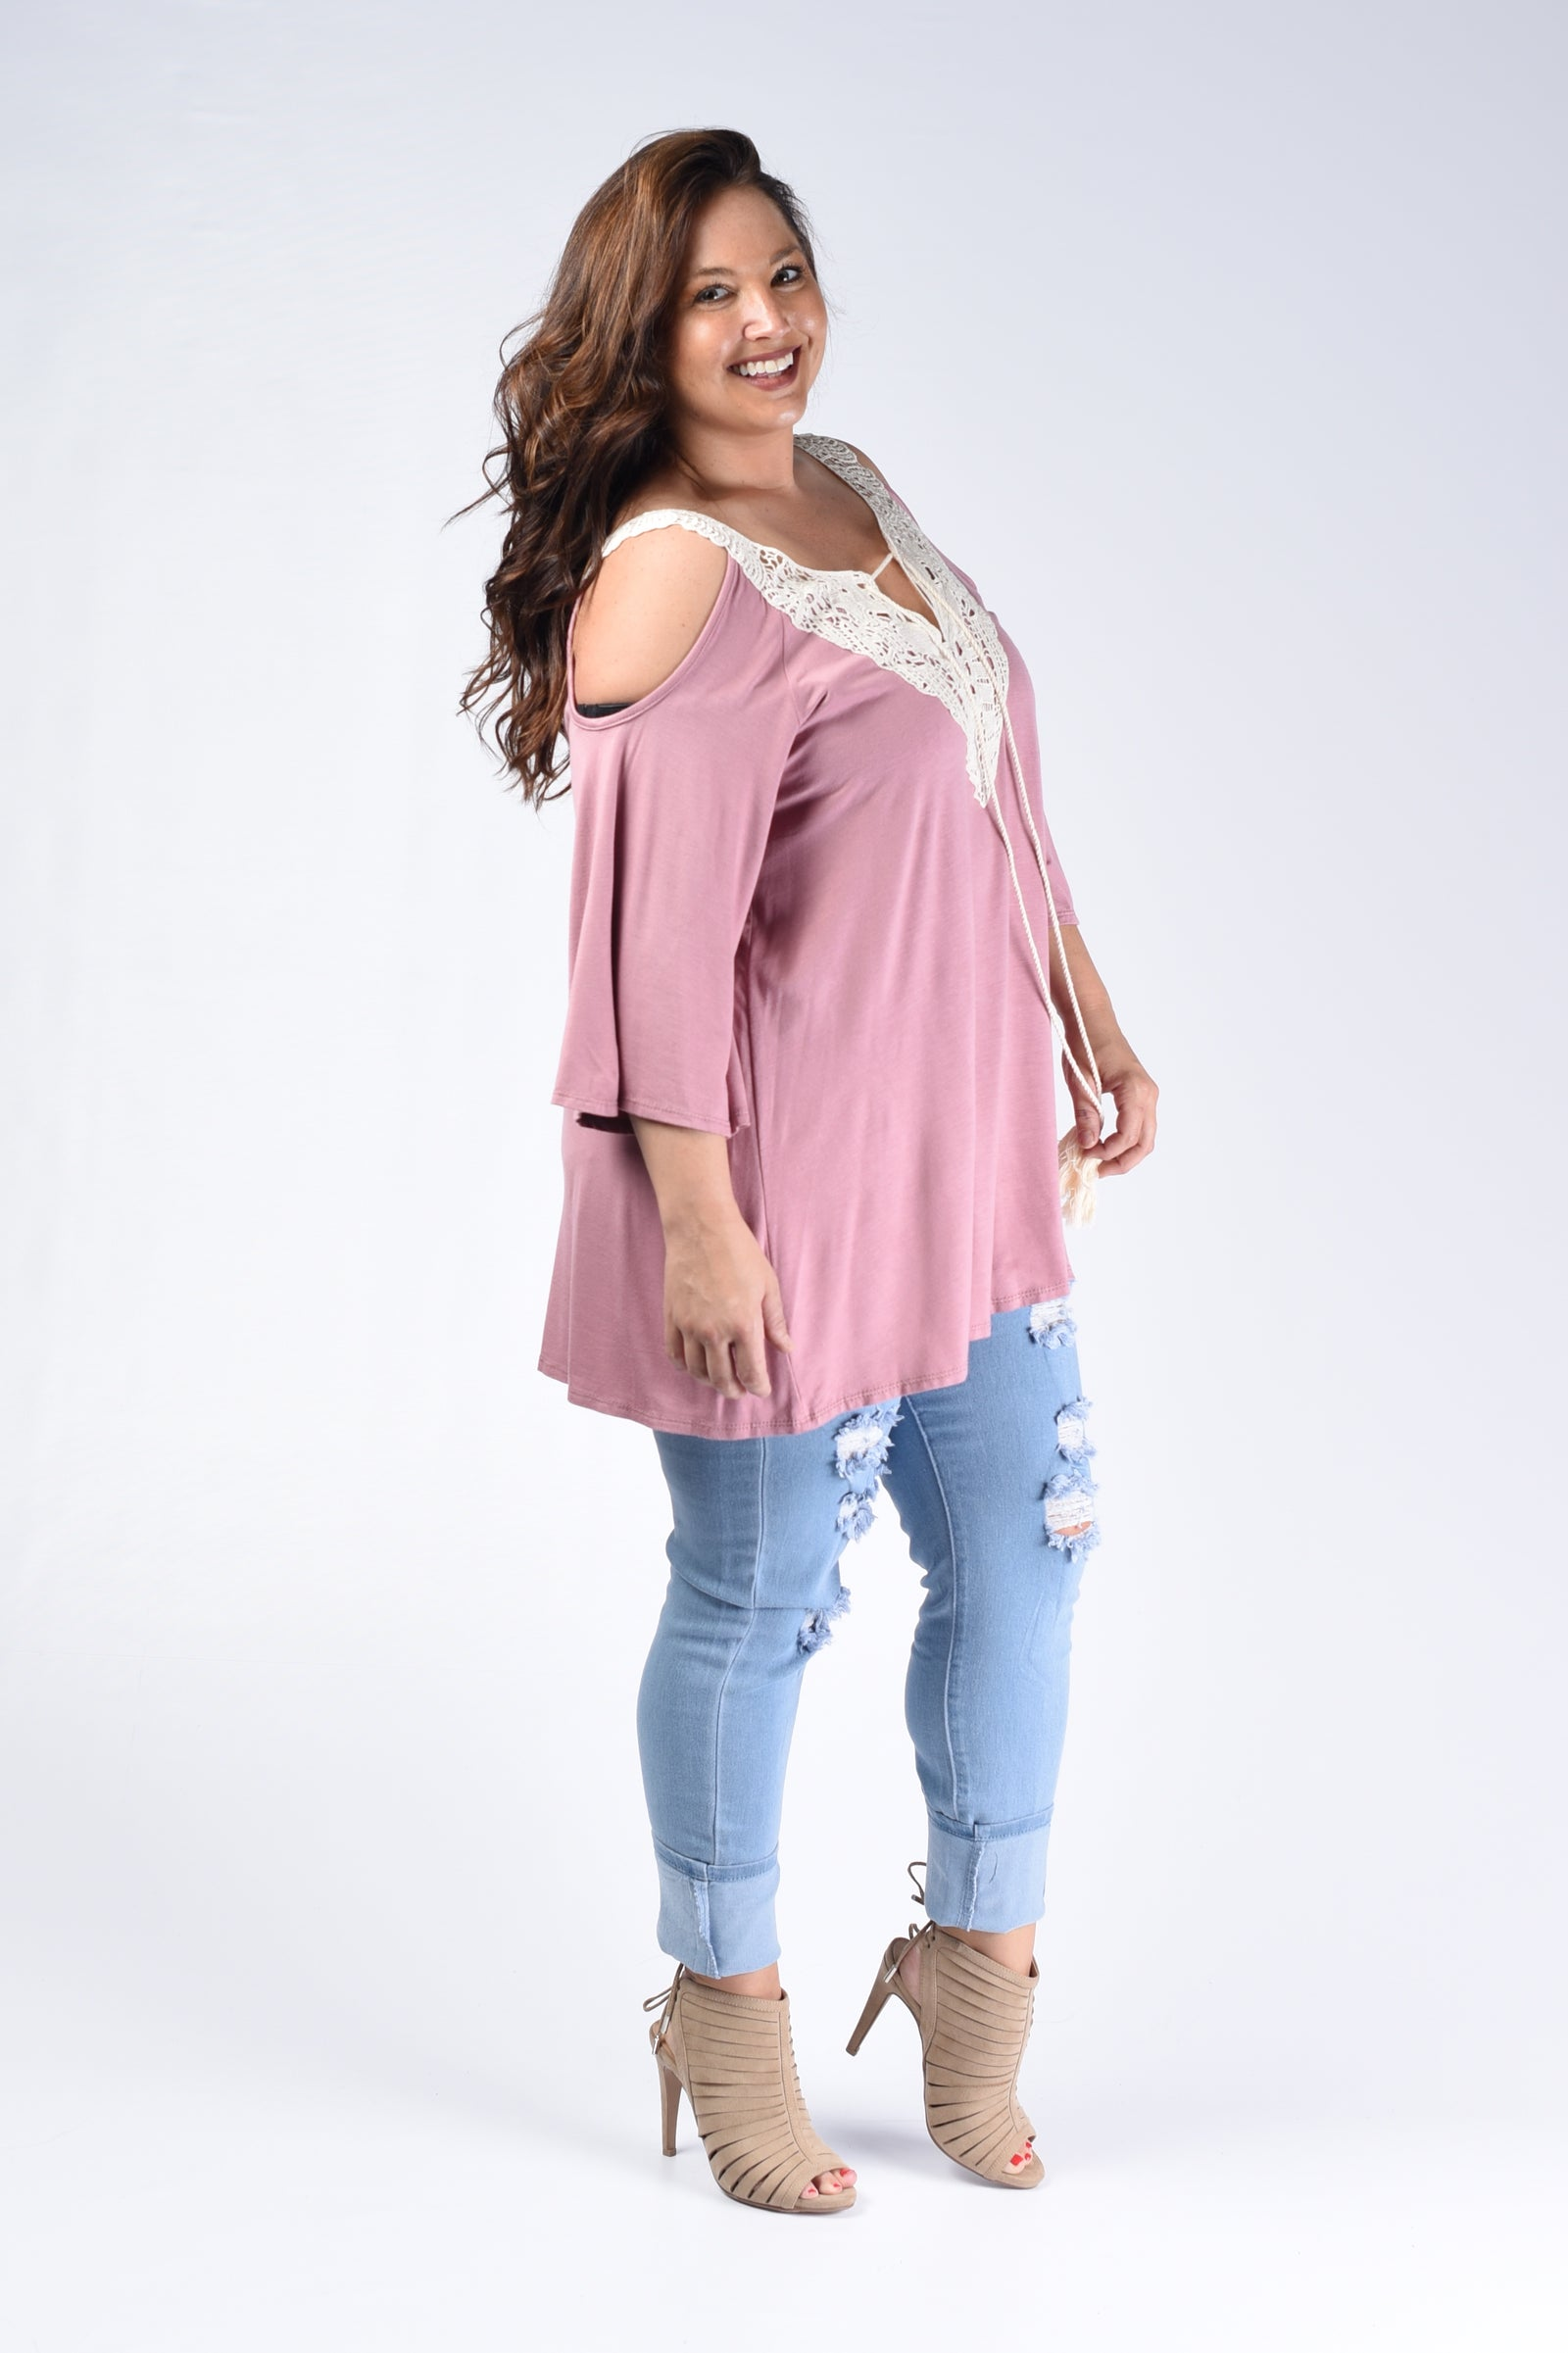 Dusty Pink & Crochet Open Shoulder Top - www.mycurvystore.com - Curvy Boutique - Plus Size